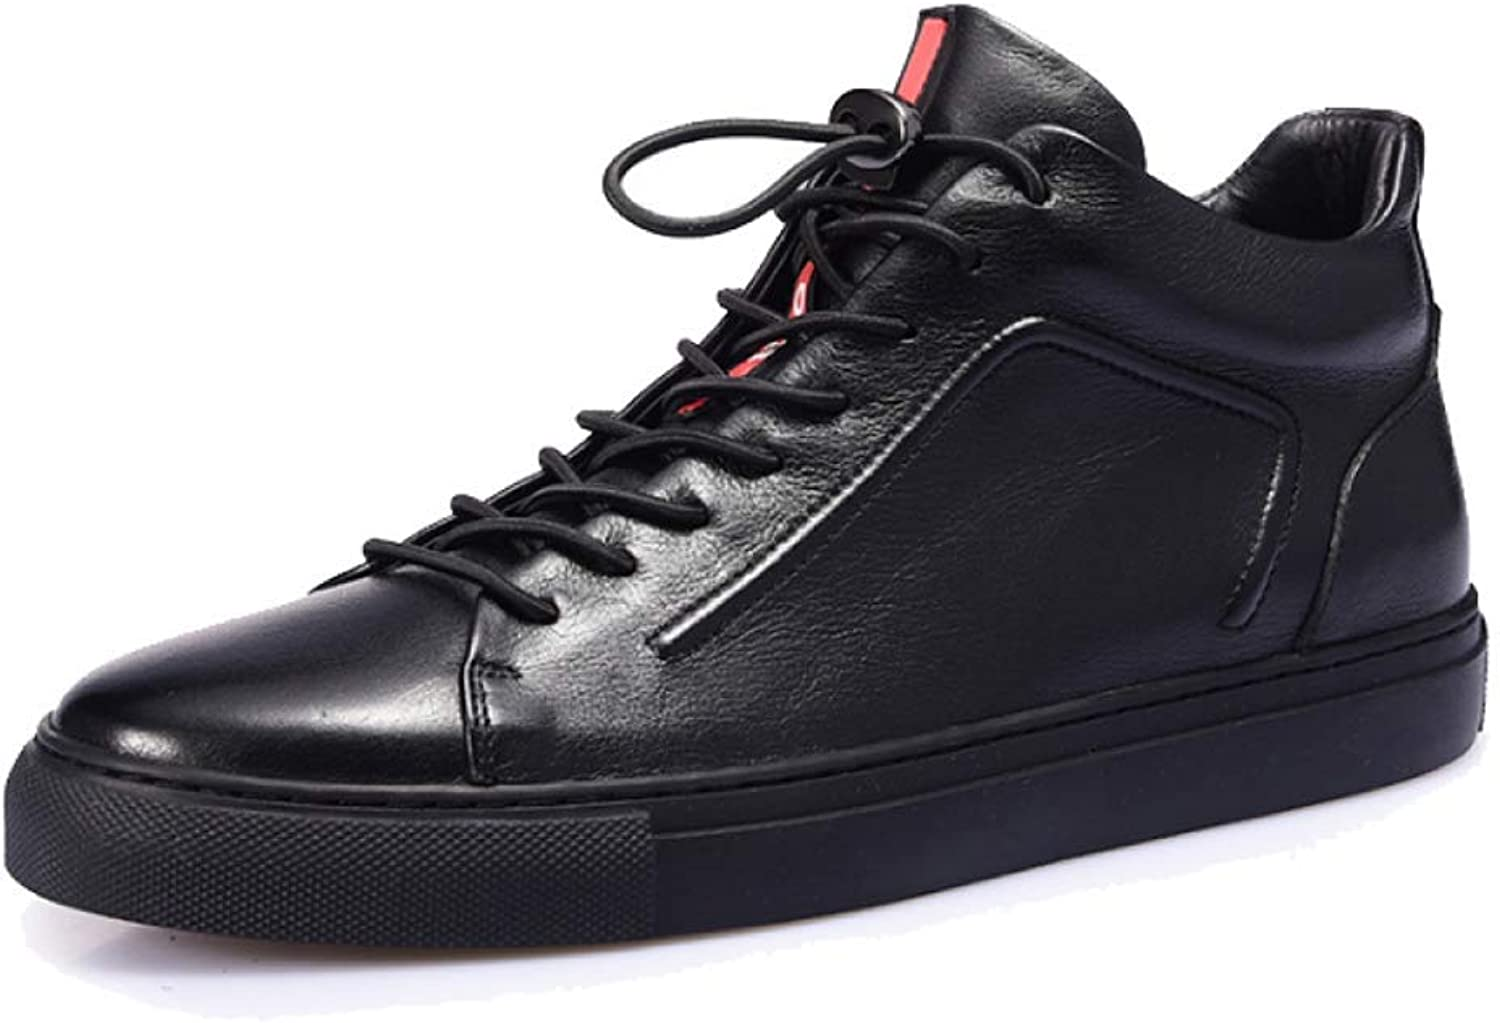 HWG-GAOYZ shoes Men's Martin Ankle Boots Footwear Outdoor Non-slip Breathable Keep Warm Casual Leather Boots Autumn,Black-38